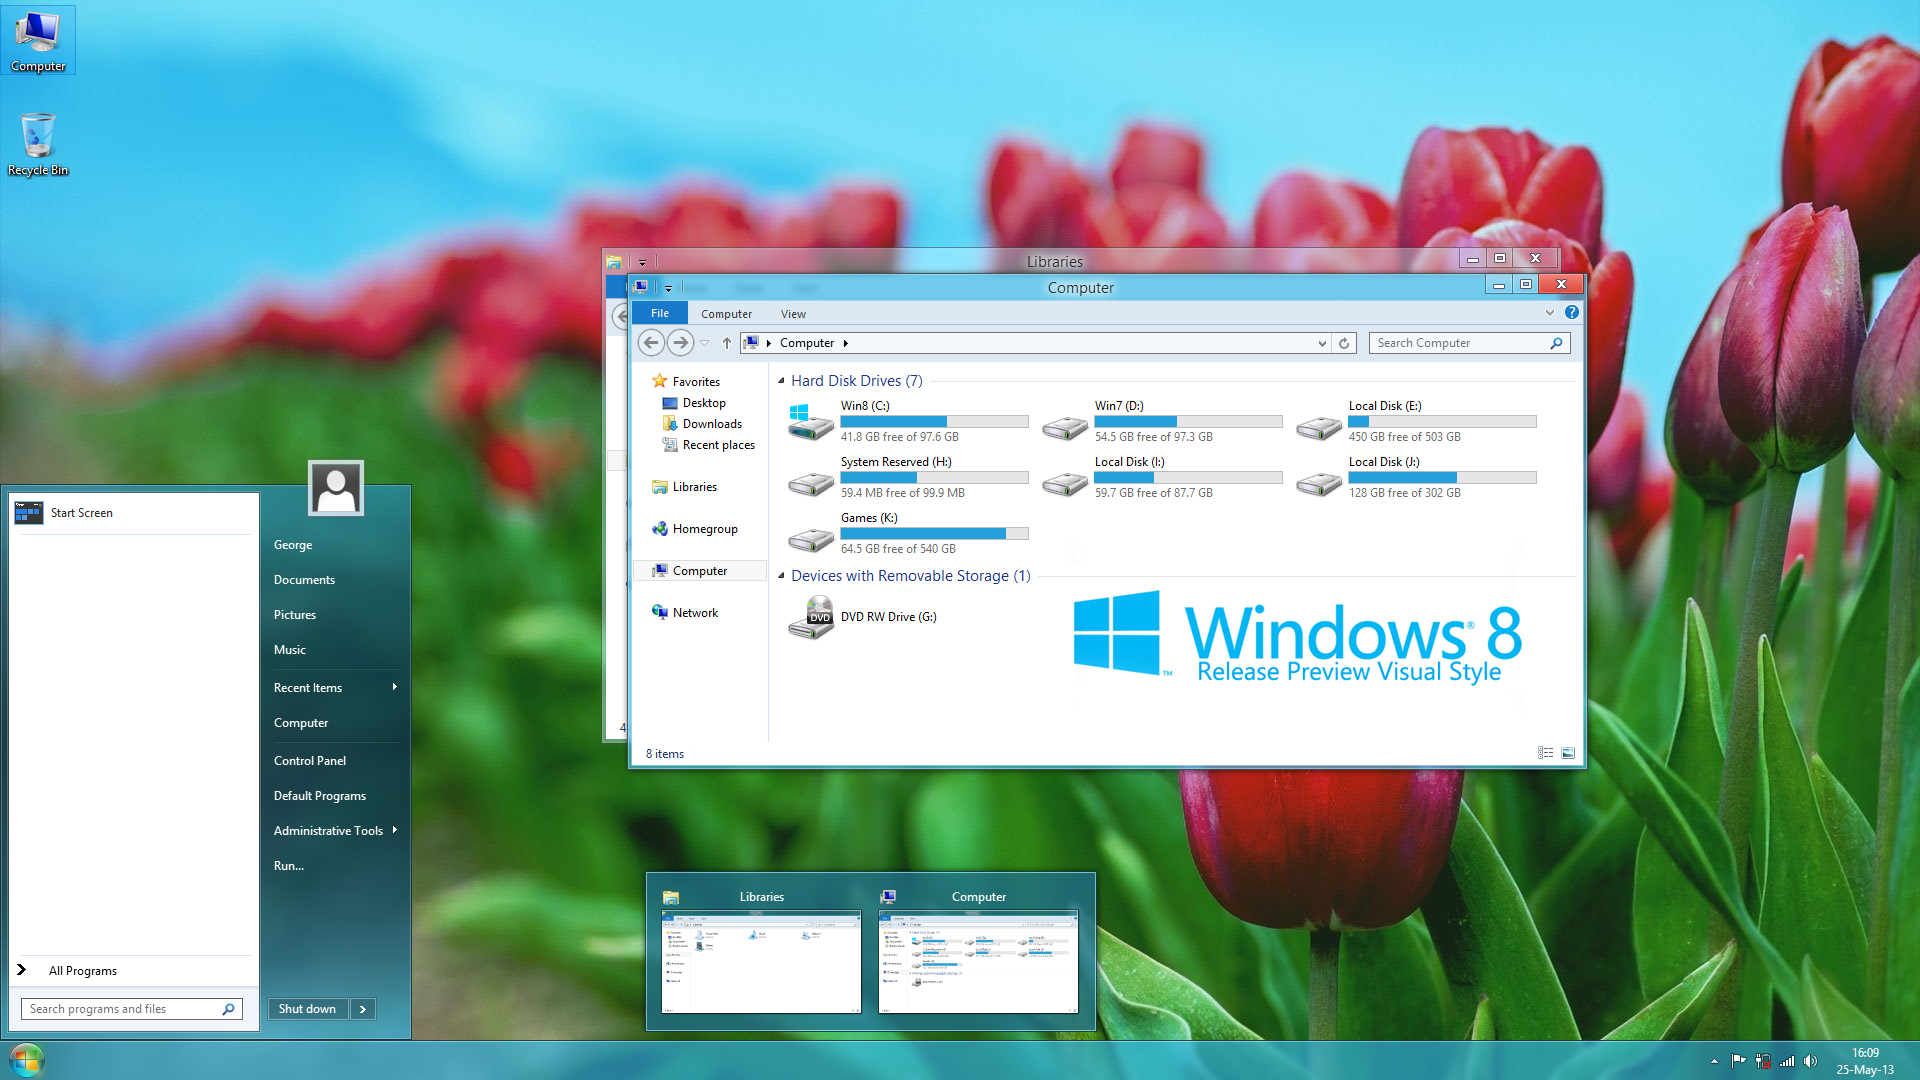 themes windows 8 utilities visual styles 8 release preview visual 1920x1080